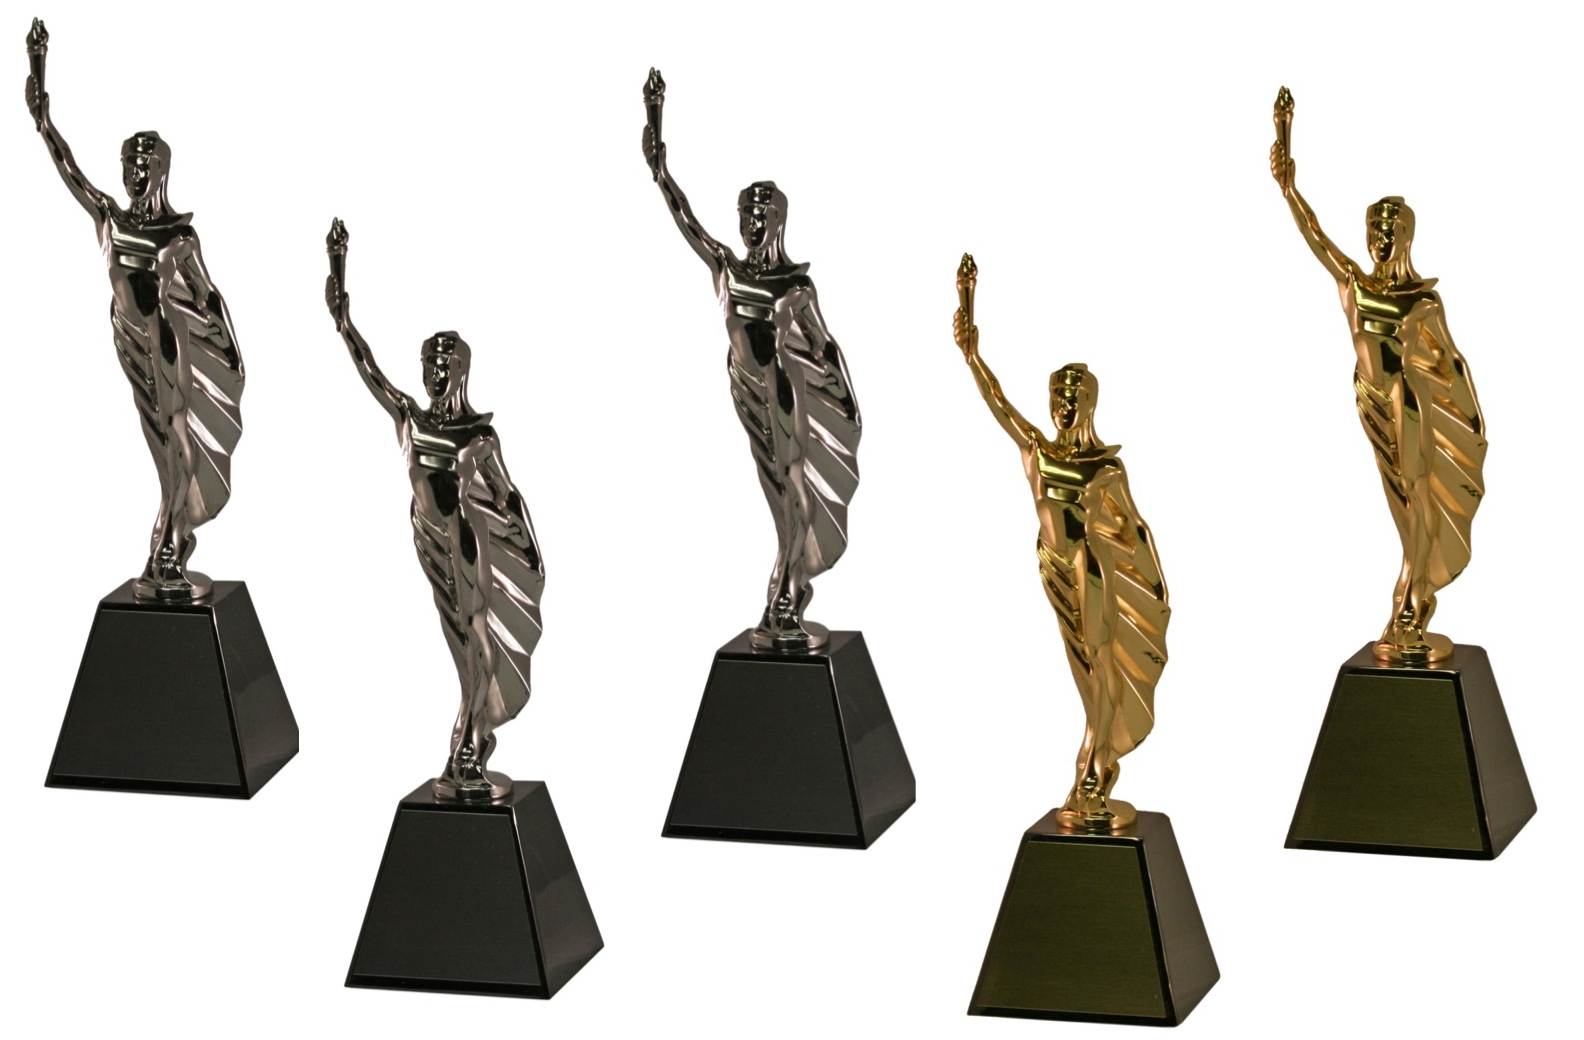 Vemma garners five prestigious MARCOM Awards in the 2011 competition for creative excellence